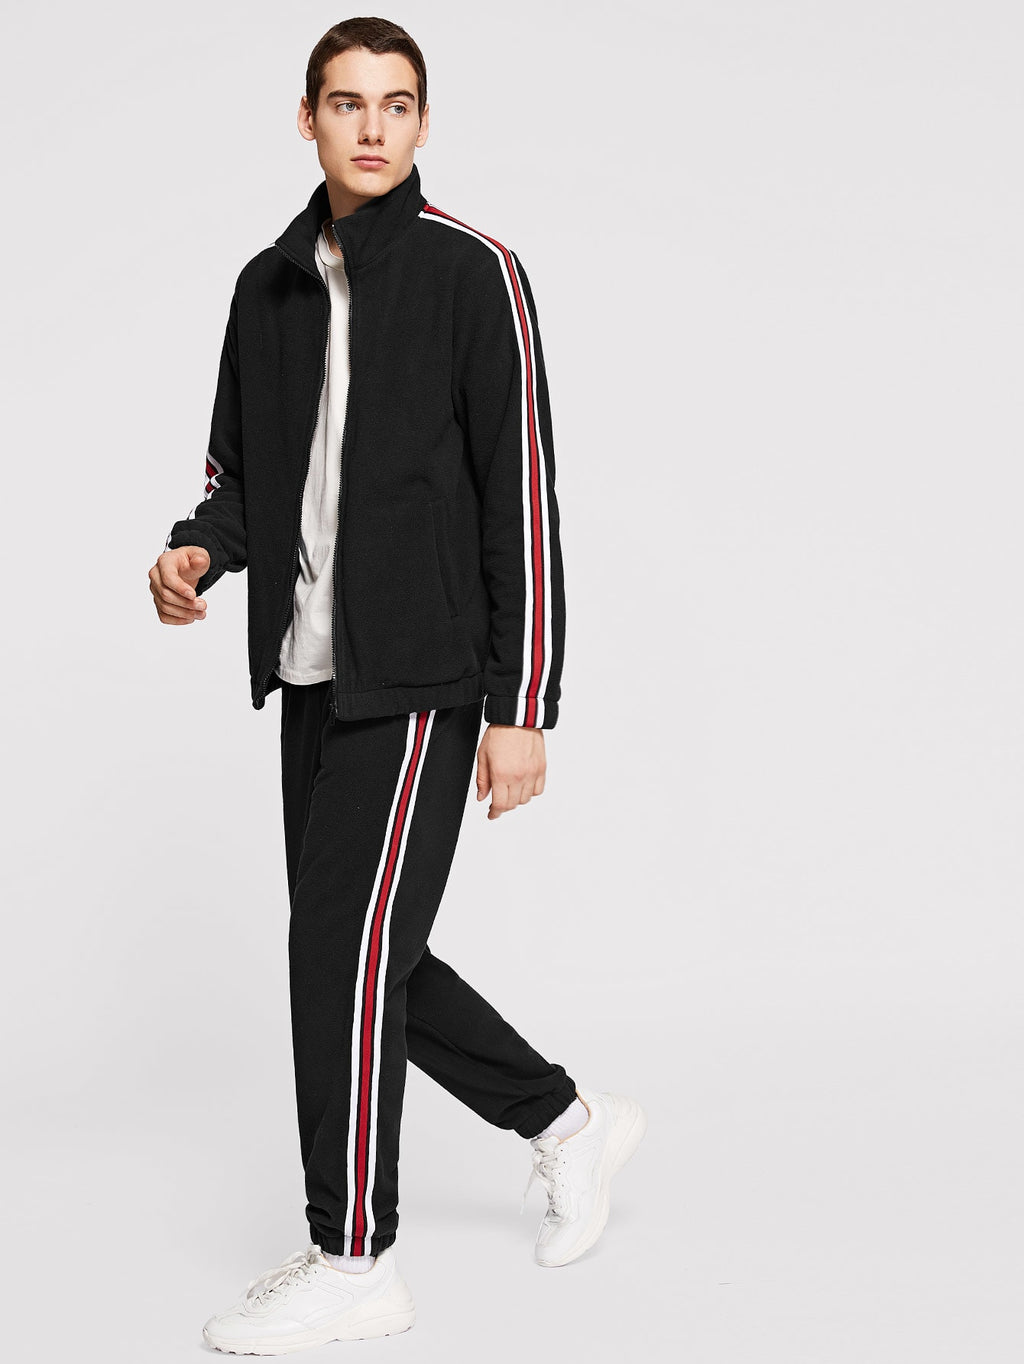 Men's Tracksuit - Zip Up Mock-Neck Striped Jacket & Pants Set